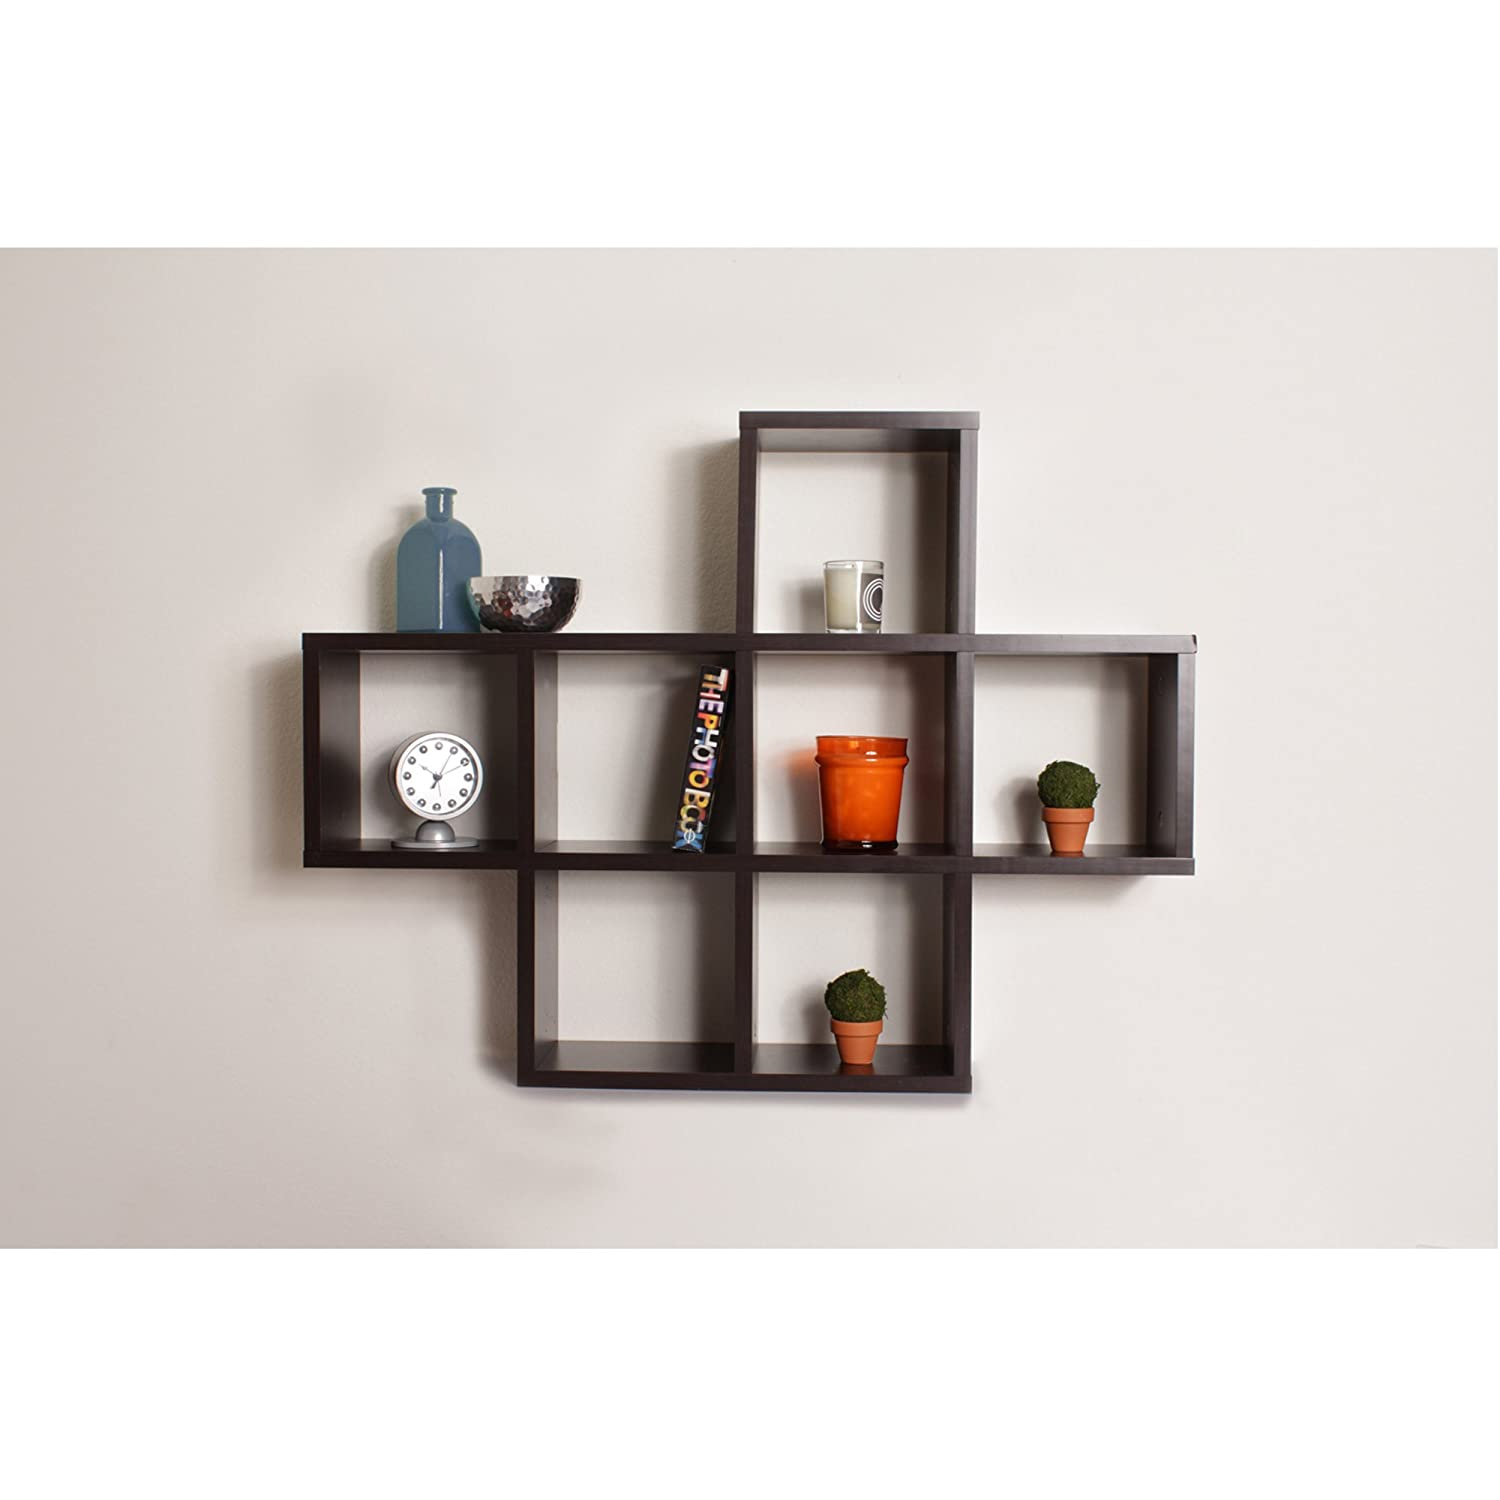 Amazoncom Cubby Laminated Veneer Shelving Unit in